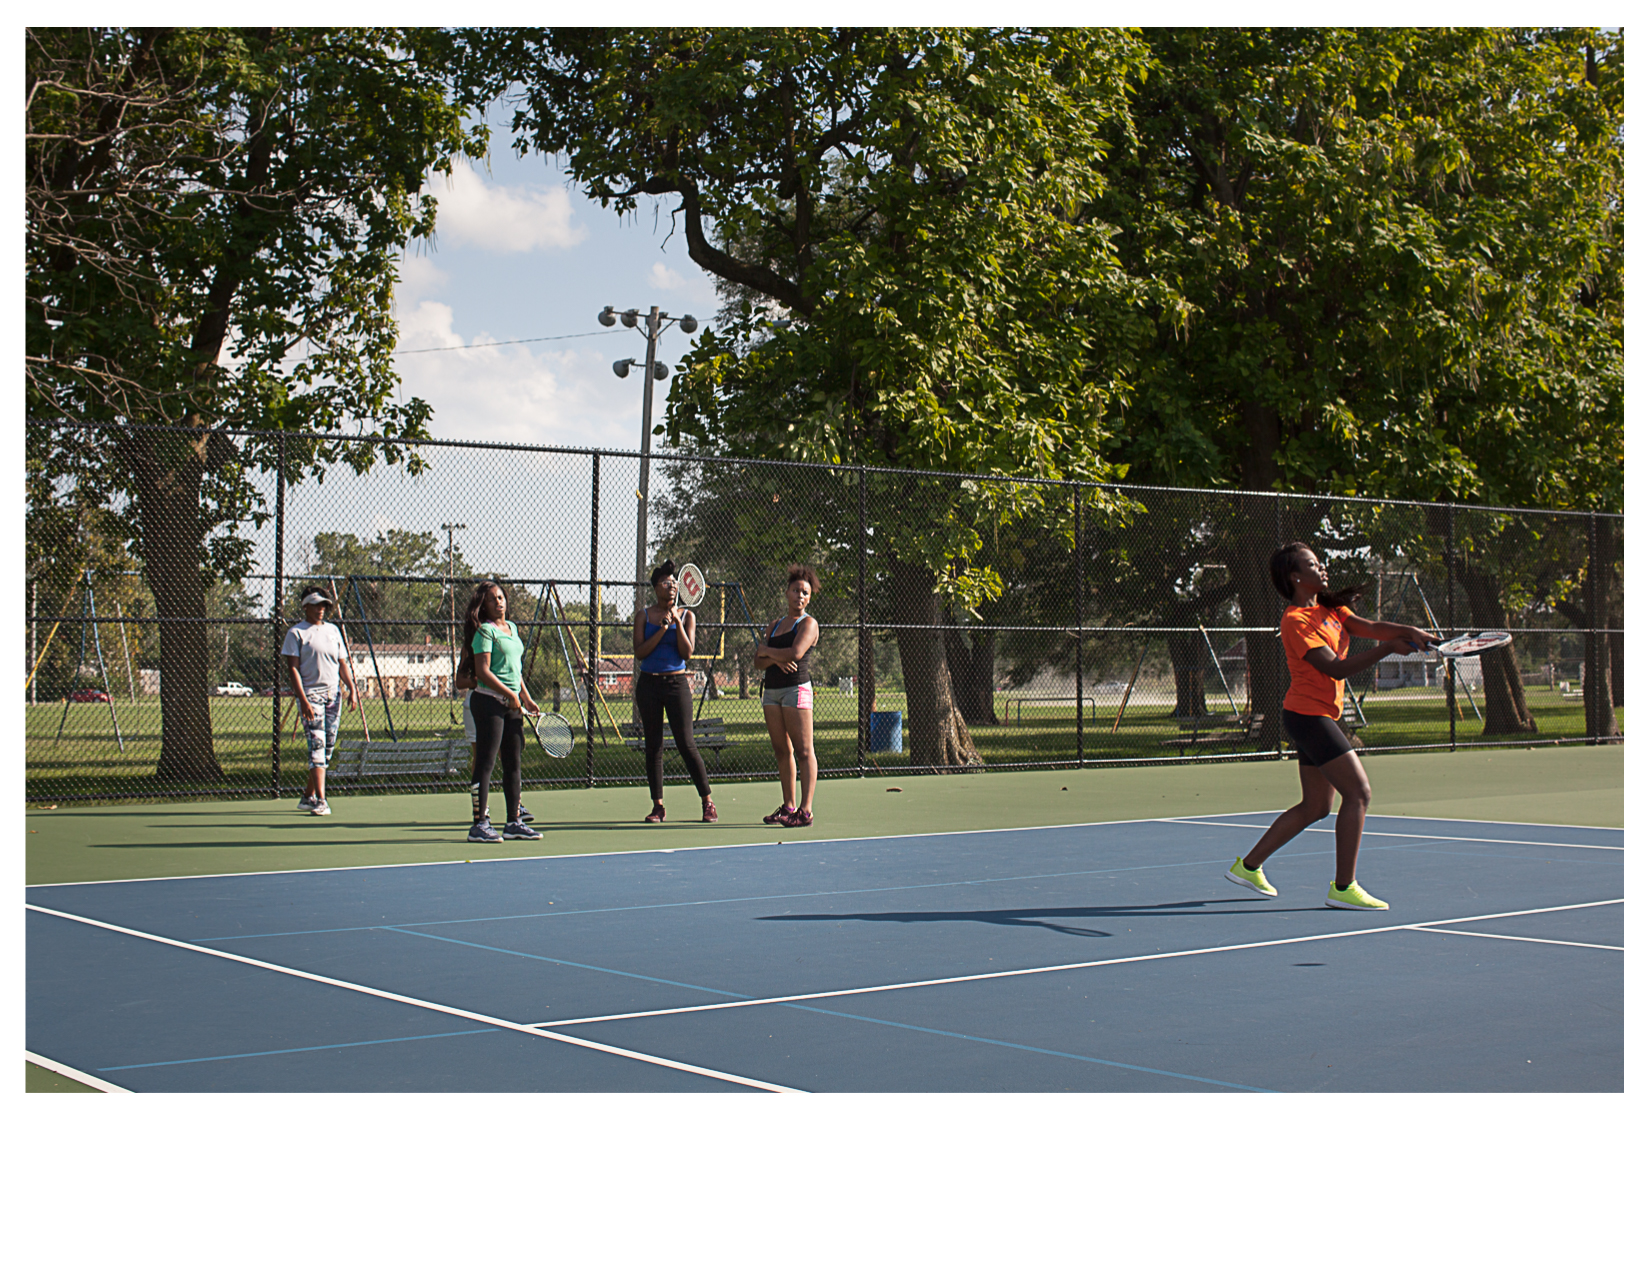 East St Louis High School Girls Tennis Team Practicing in  Lincoln Park, East St. Louis, IL